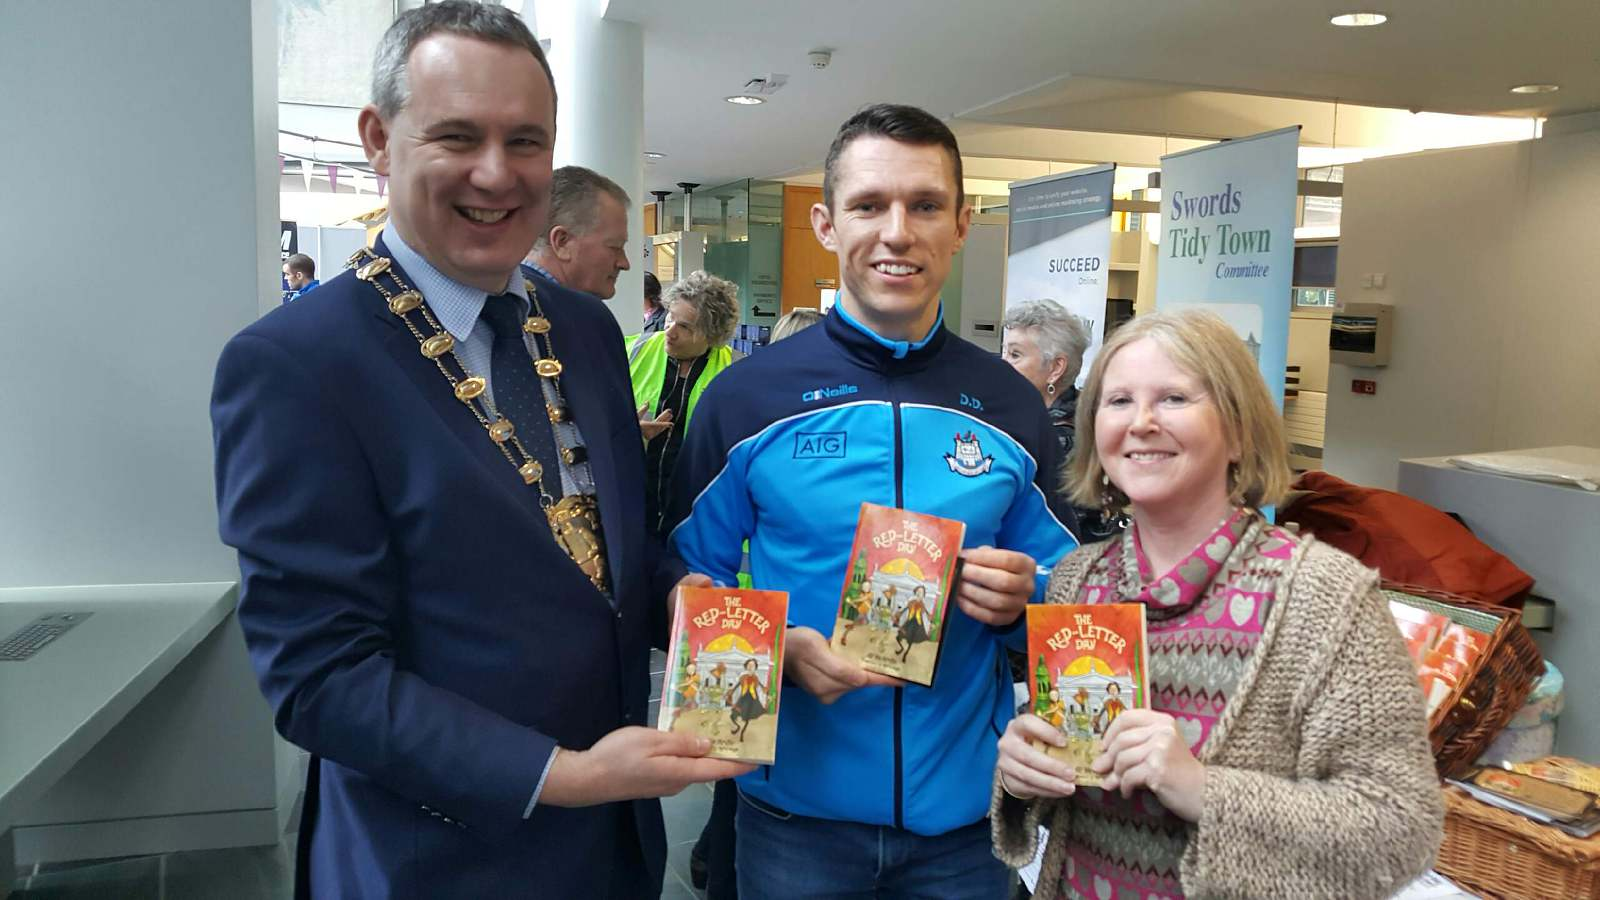 fingal-mayor-darragh-butler-dubs-star-darren-daly-and-author-sp-mcardle-at-the-swords-enterprise-town-event-sat-nov-19-2016